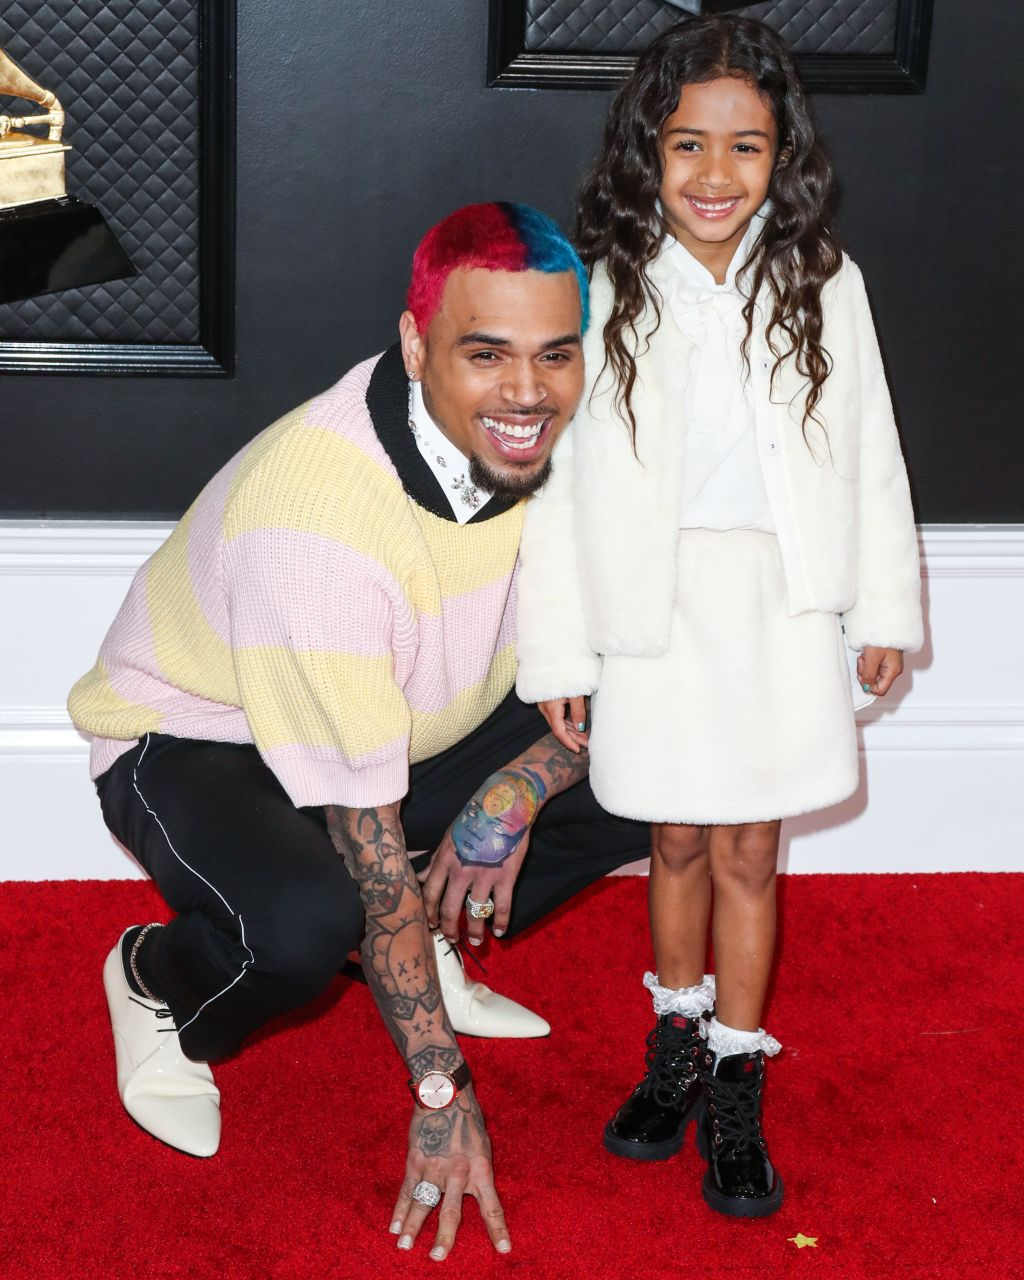 Singer Chris Brown and daughter Royalty Brown arrive at the 62nd Annual GRAMMY Awards held at Staples Center on January 26, 2020 in Los Angeles, California, United States.